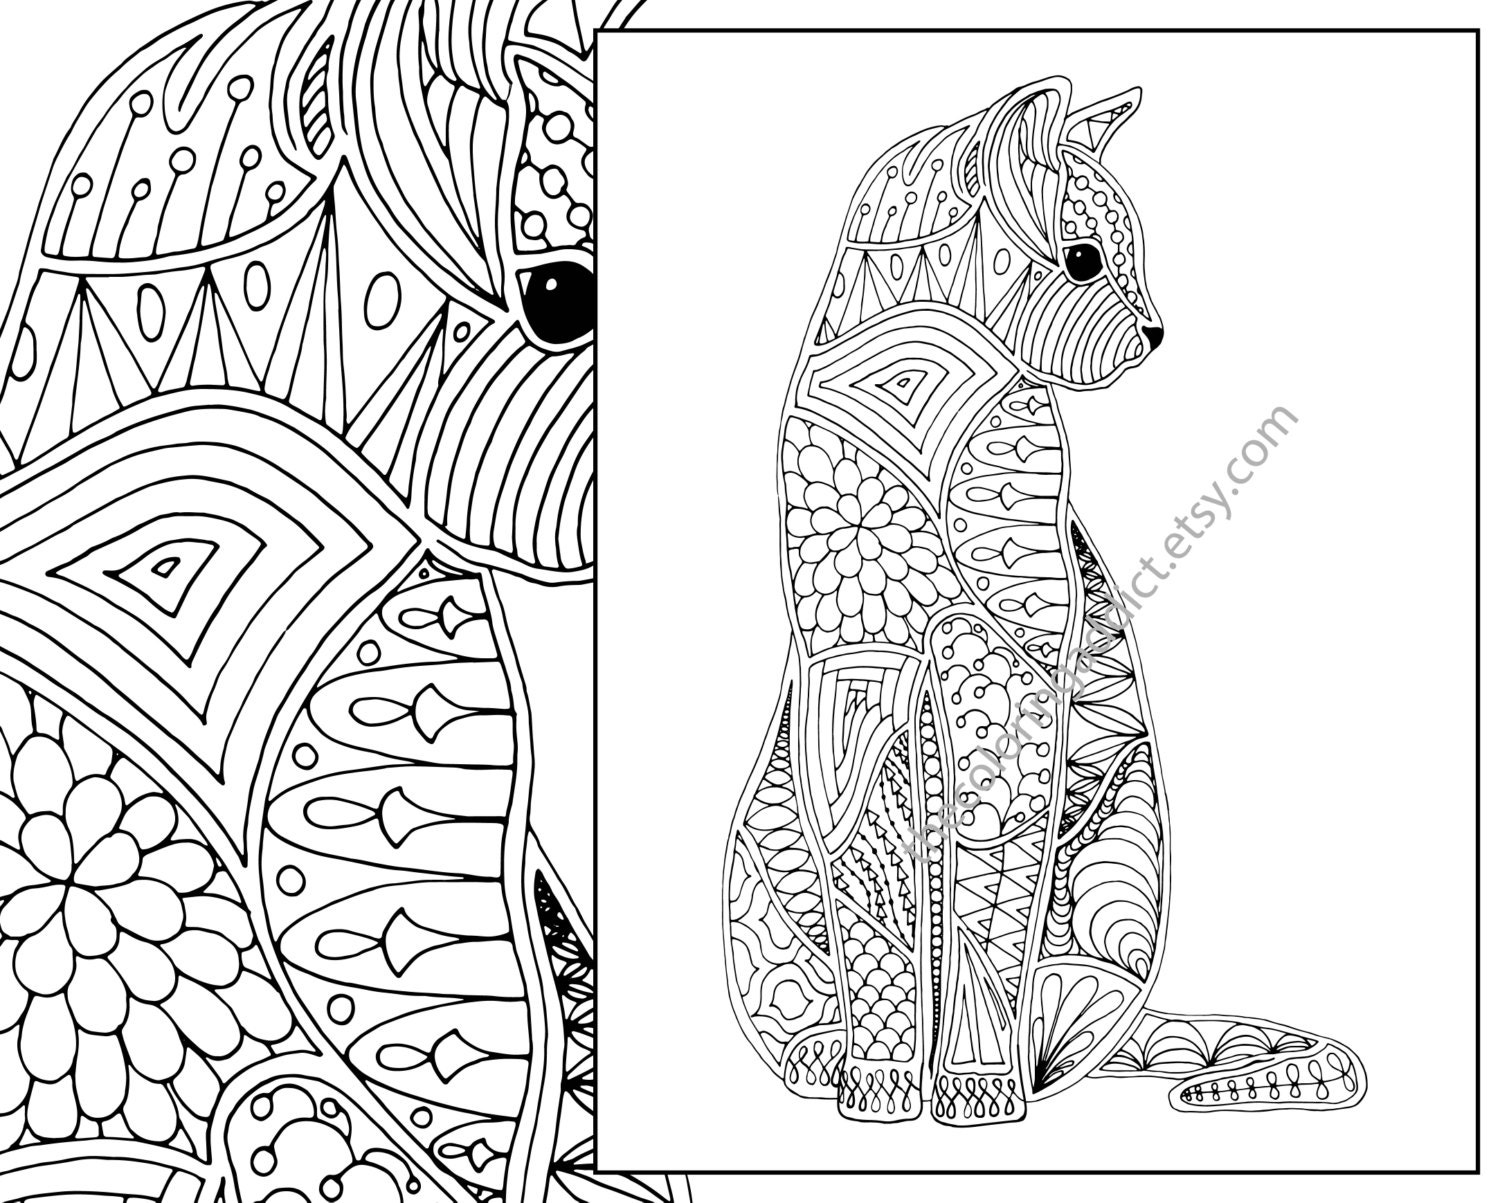 Intricate Cat Coloring Pages : Cat coloring page advanced adult